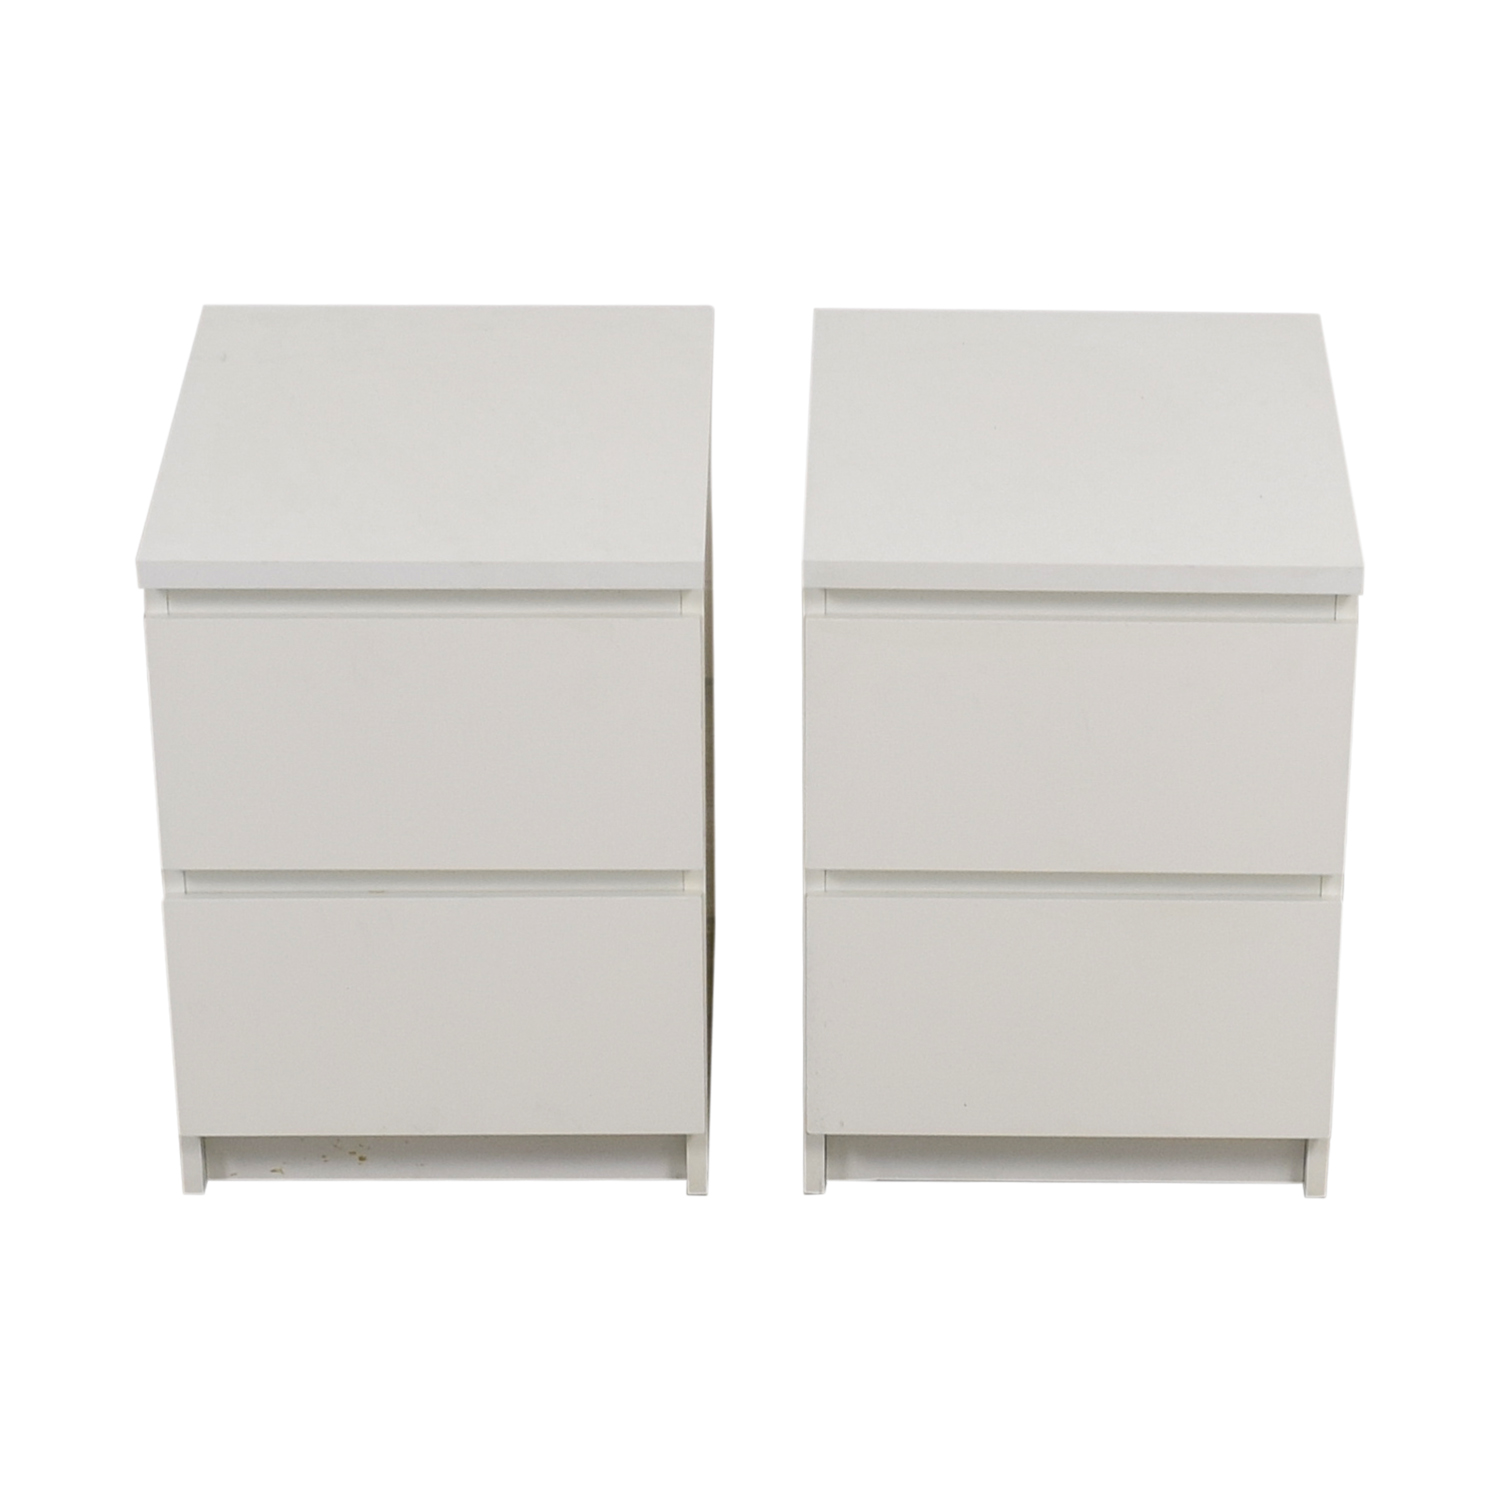 IKEA IKEA White Two-Drawer End Tables on sale